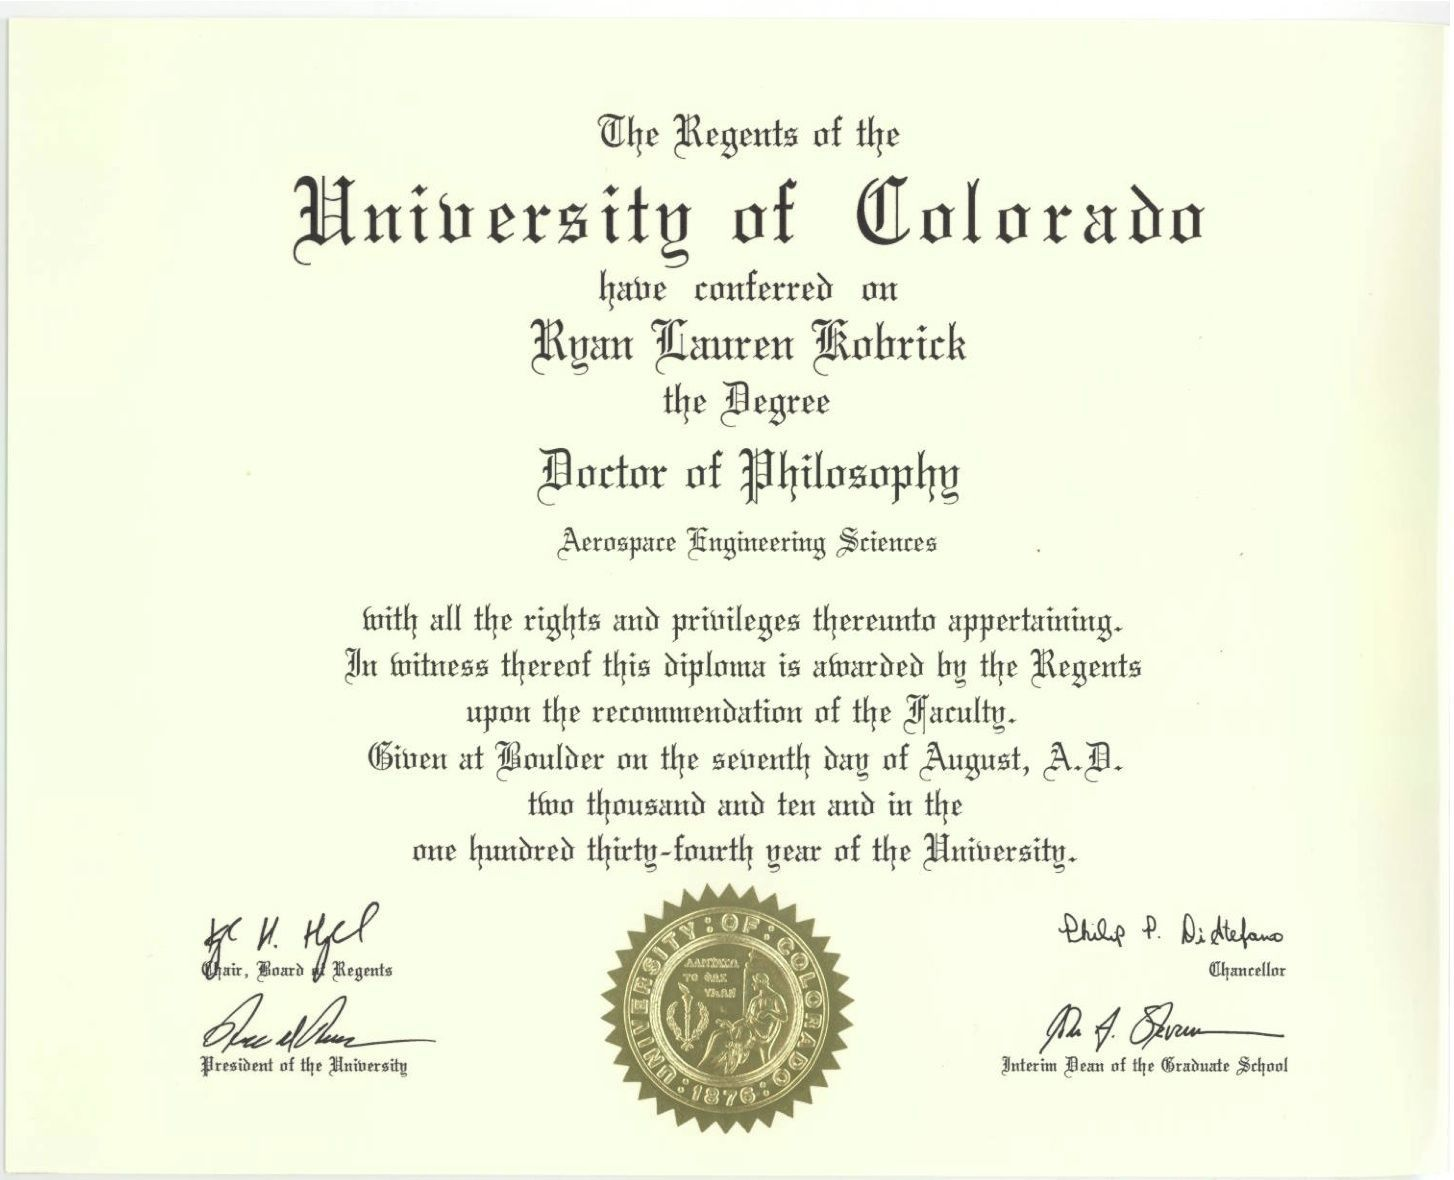 007 Phenomenal Degree Certificate Template Word High Definition Full